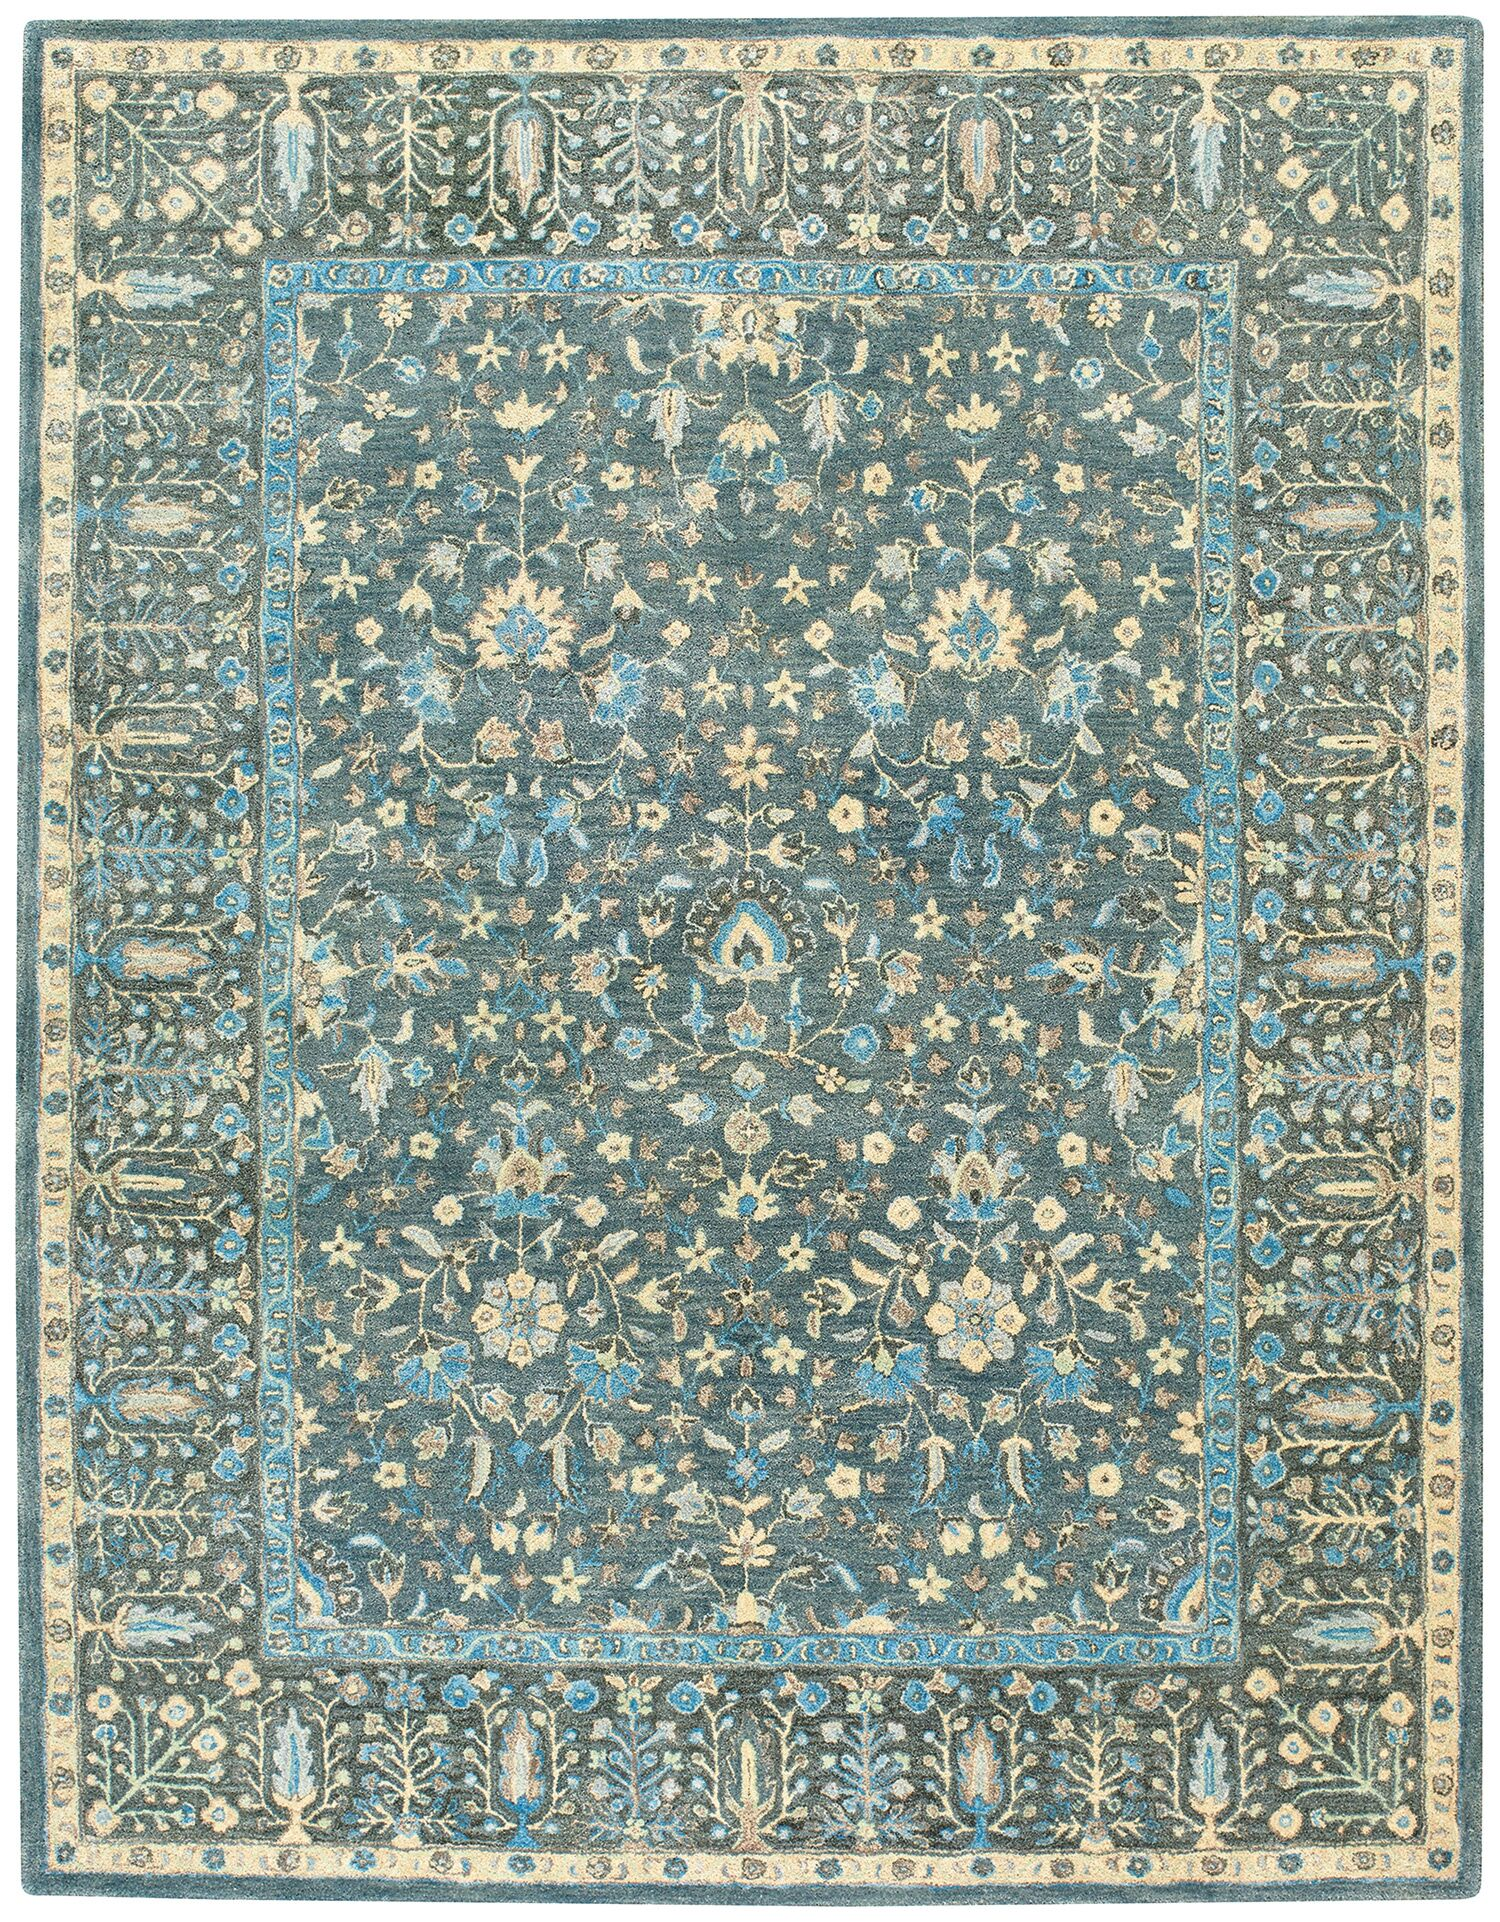 Smyrna Hand-Tufted Blue Area Rug Rug Size: Runner 2'6